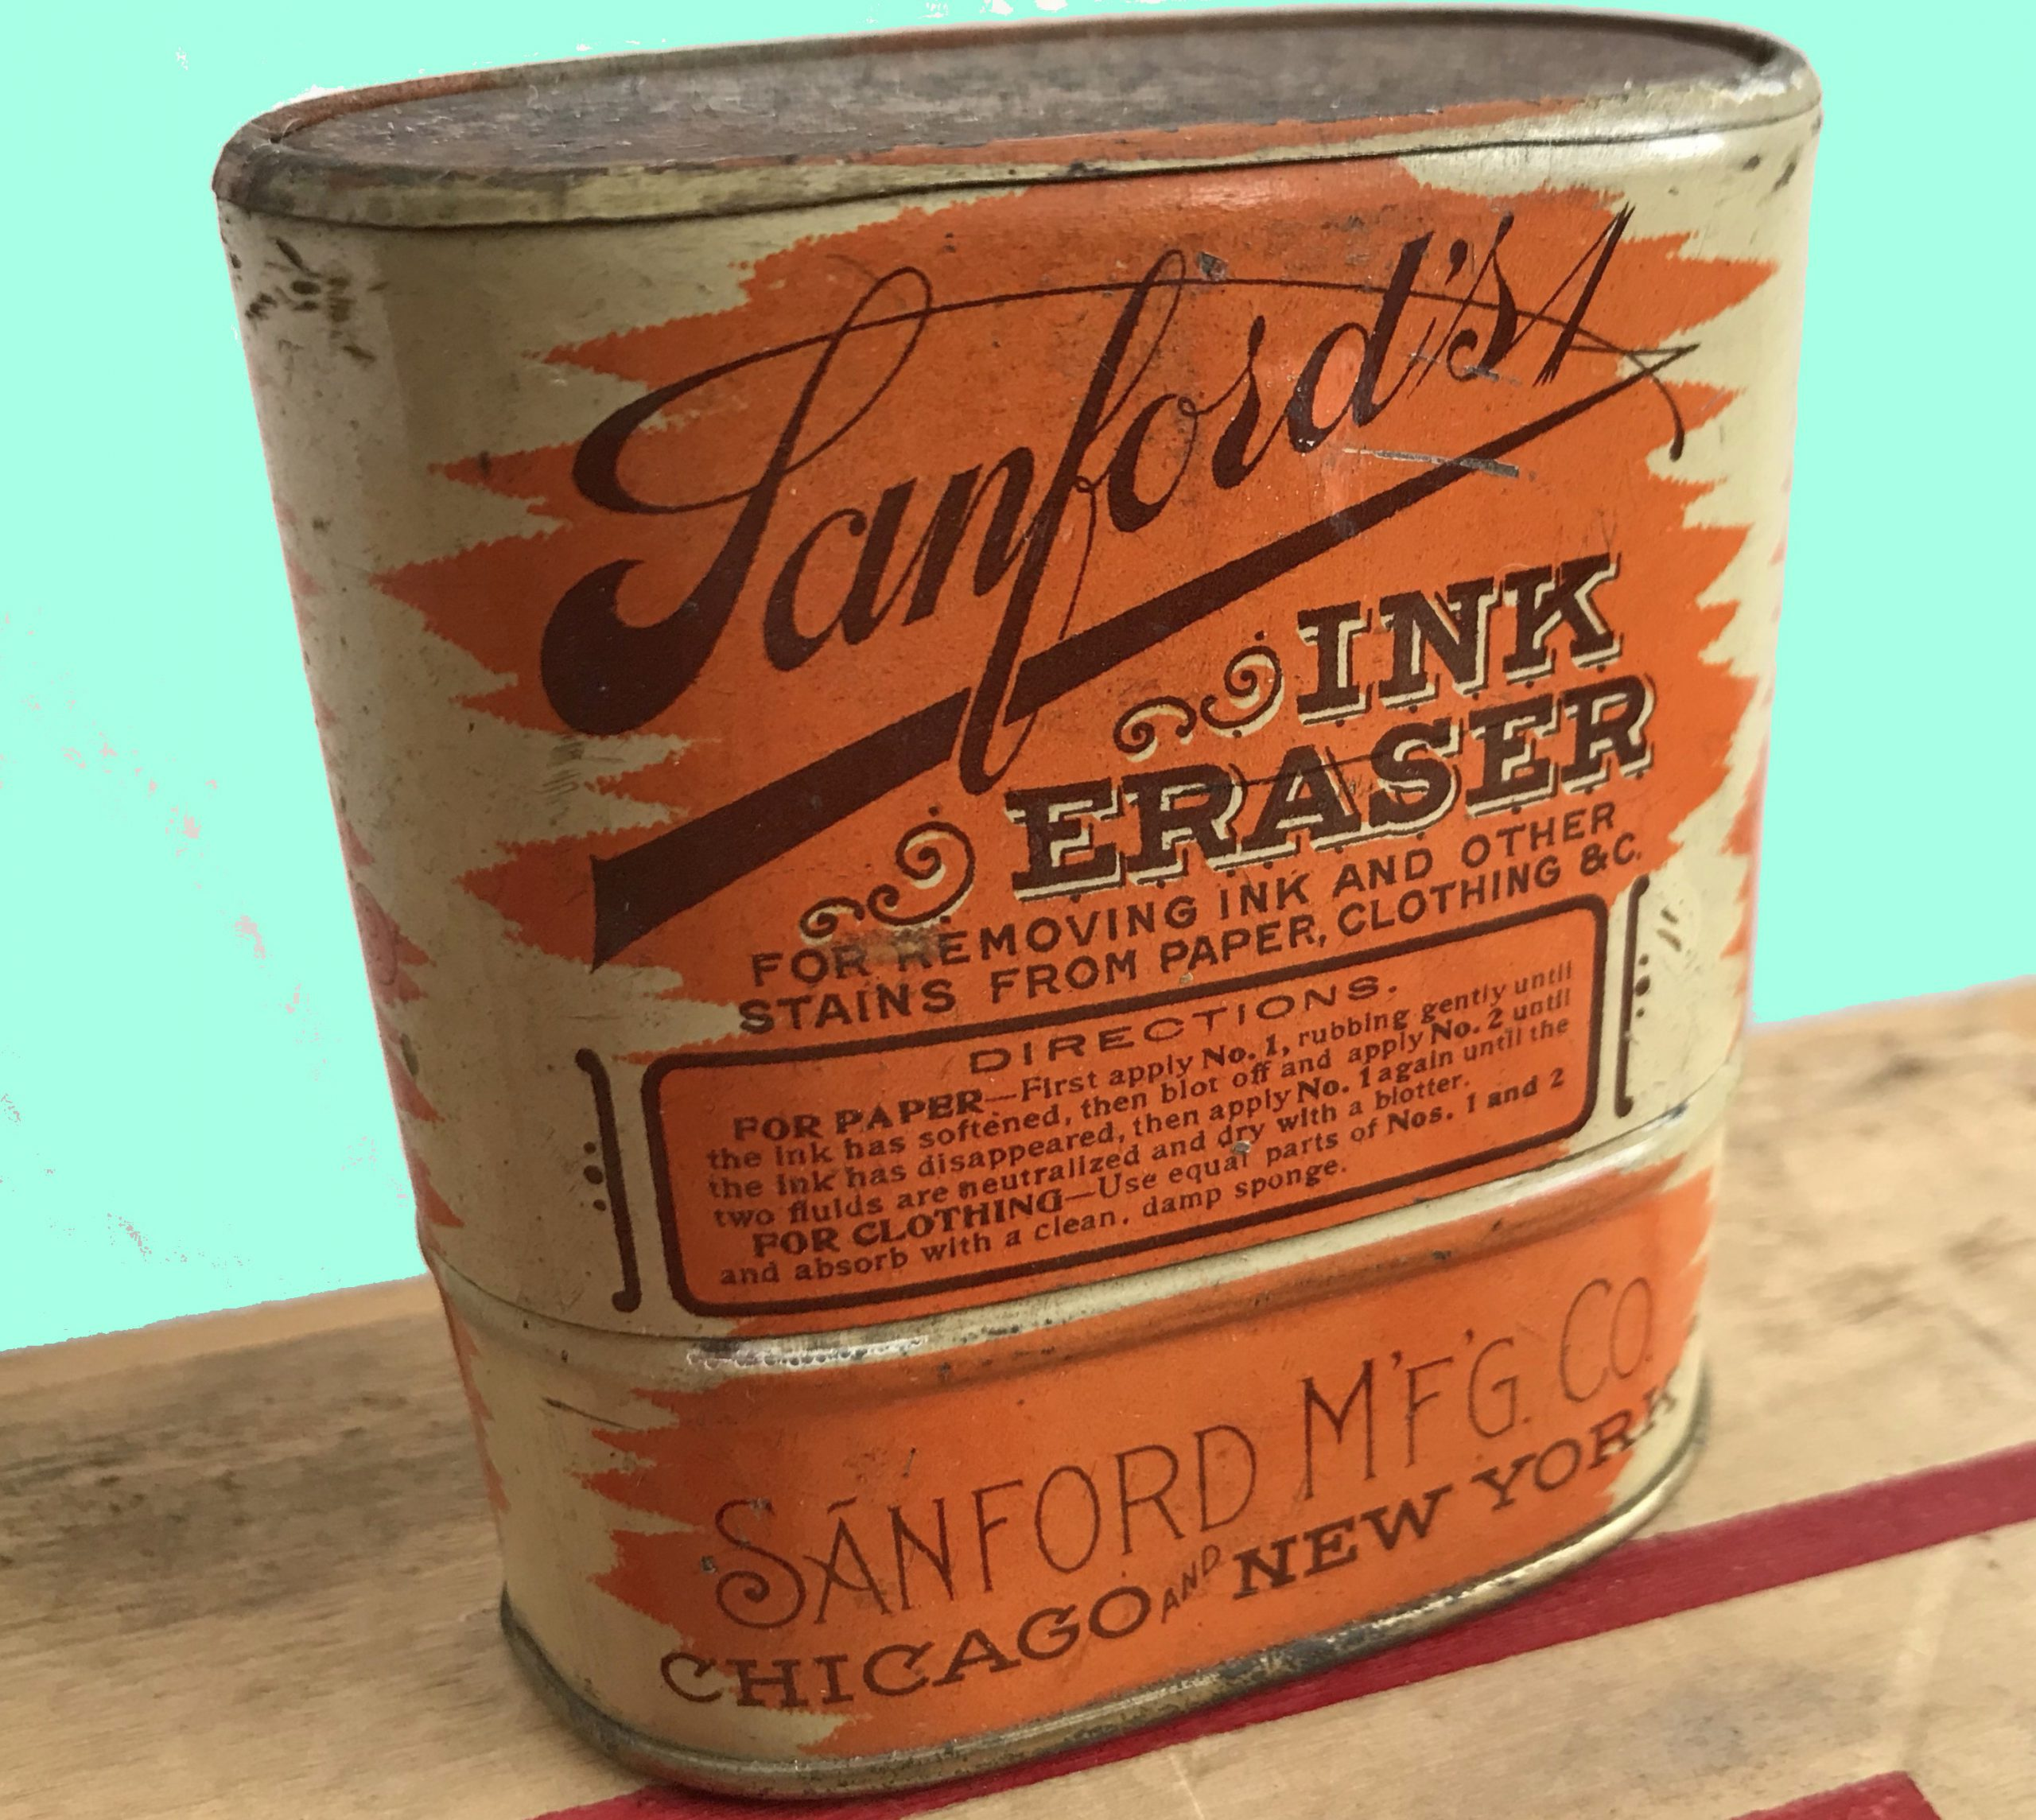 Sanford's Ink Eraser